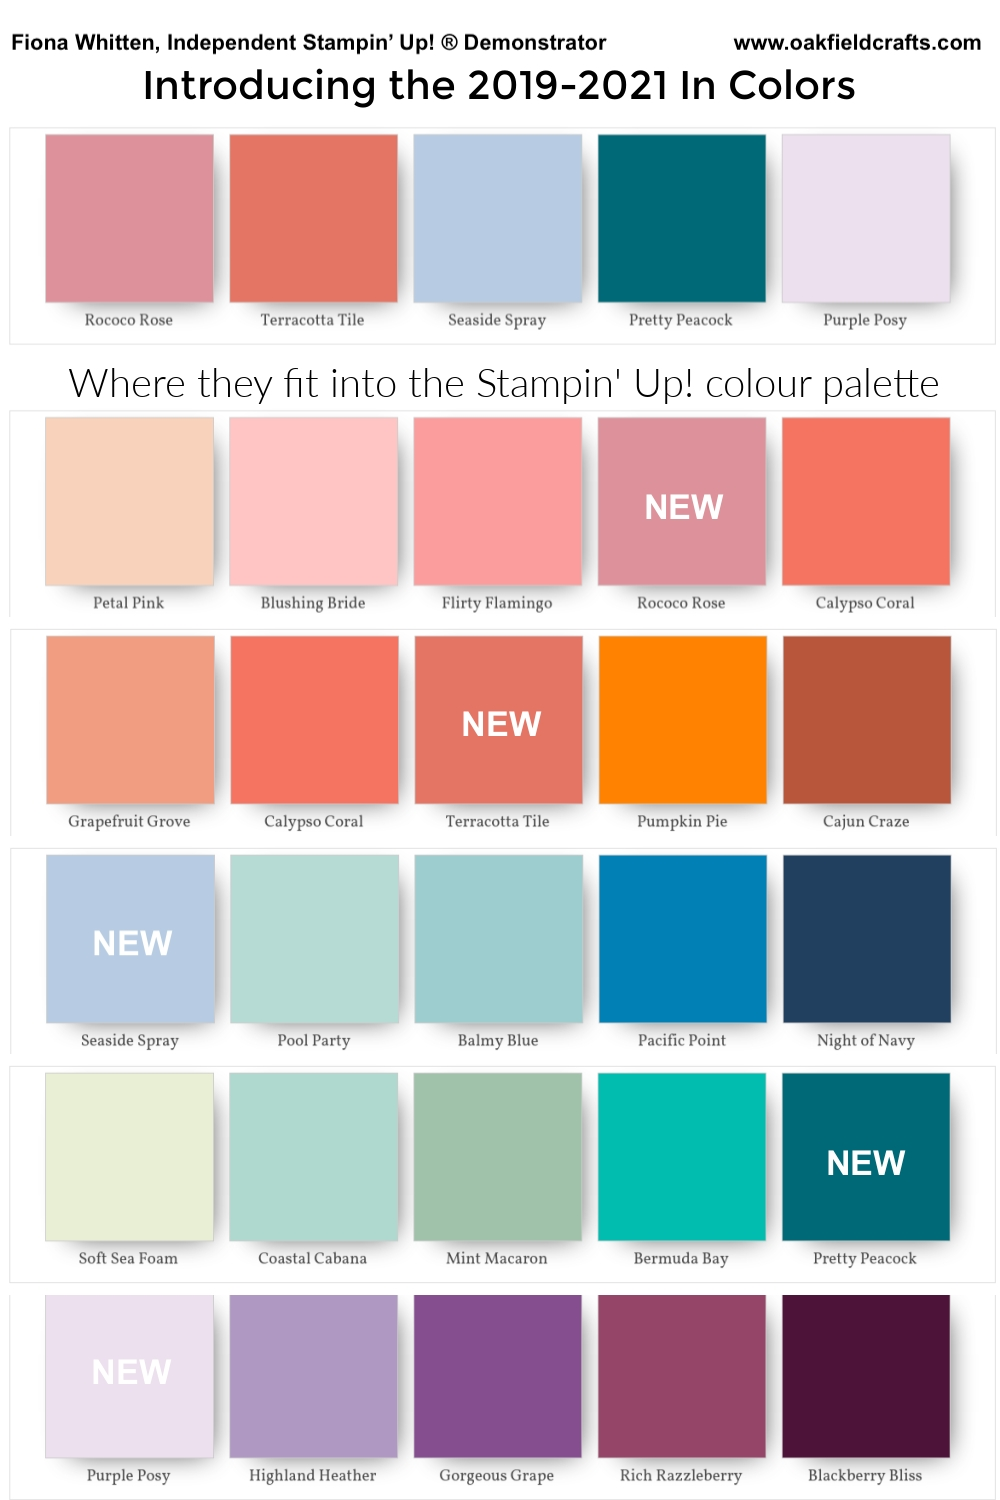 Let Me Introduce You To The 2019-2021 In Colors | Color Trends Fashion, Pantone Color, Pantone